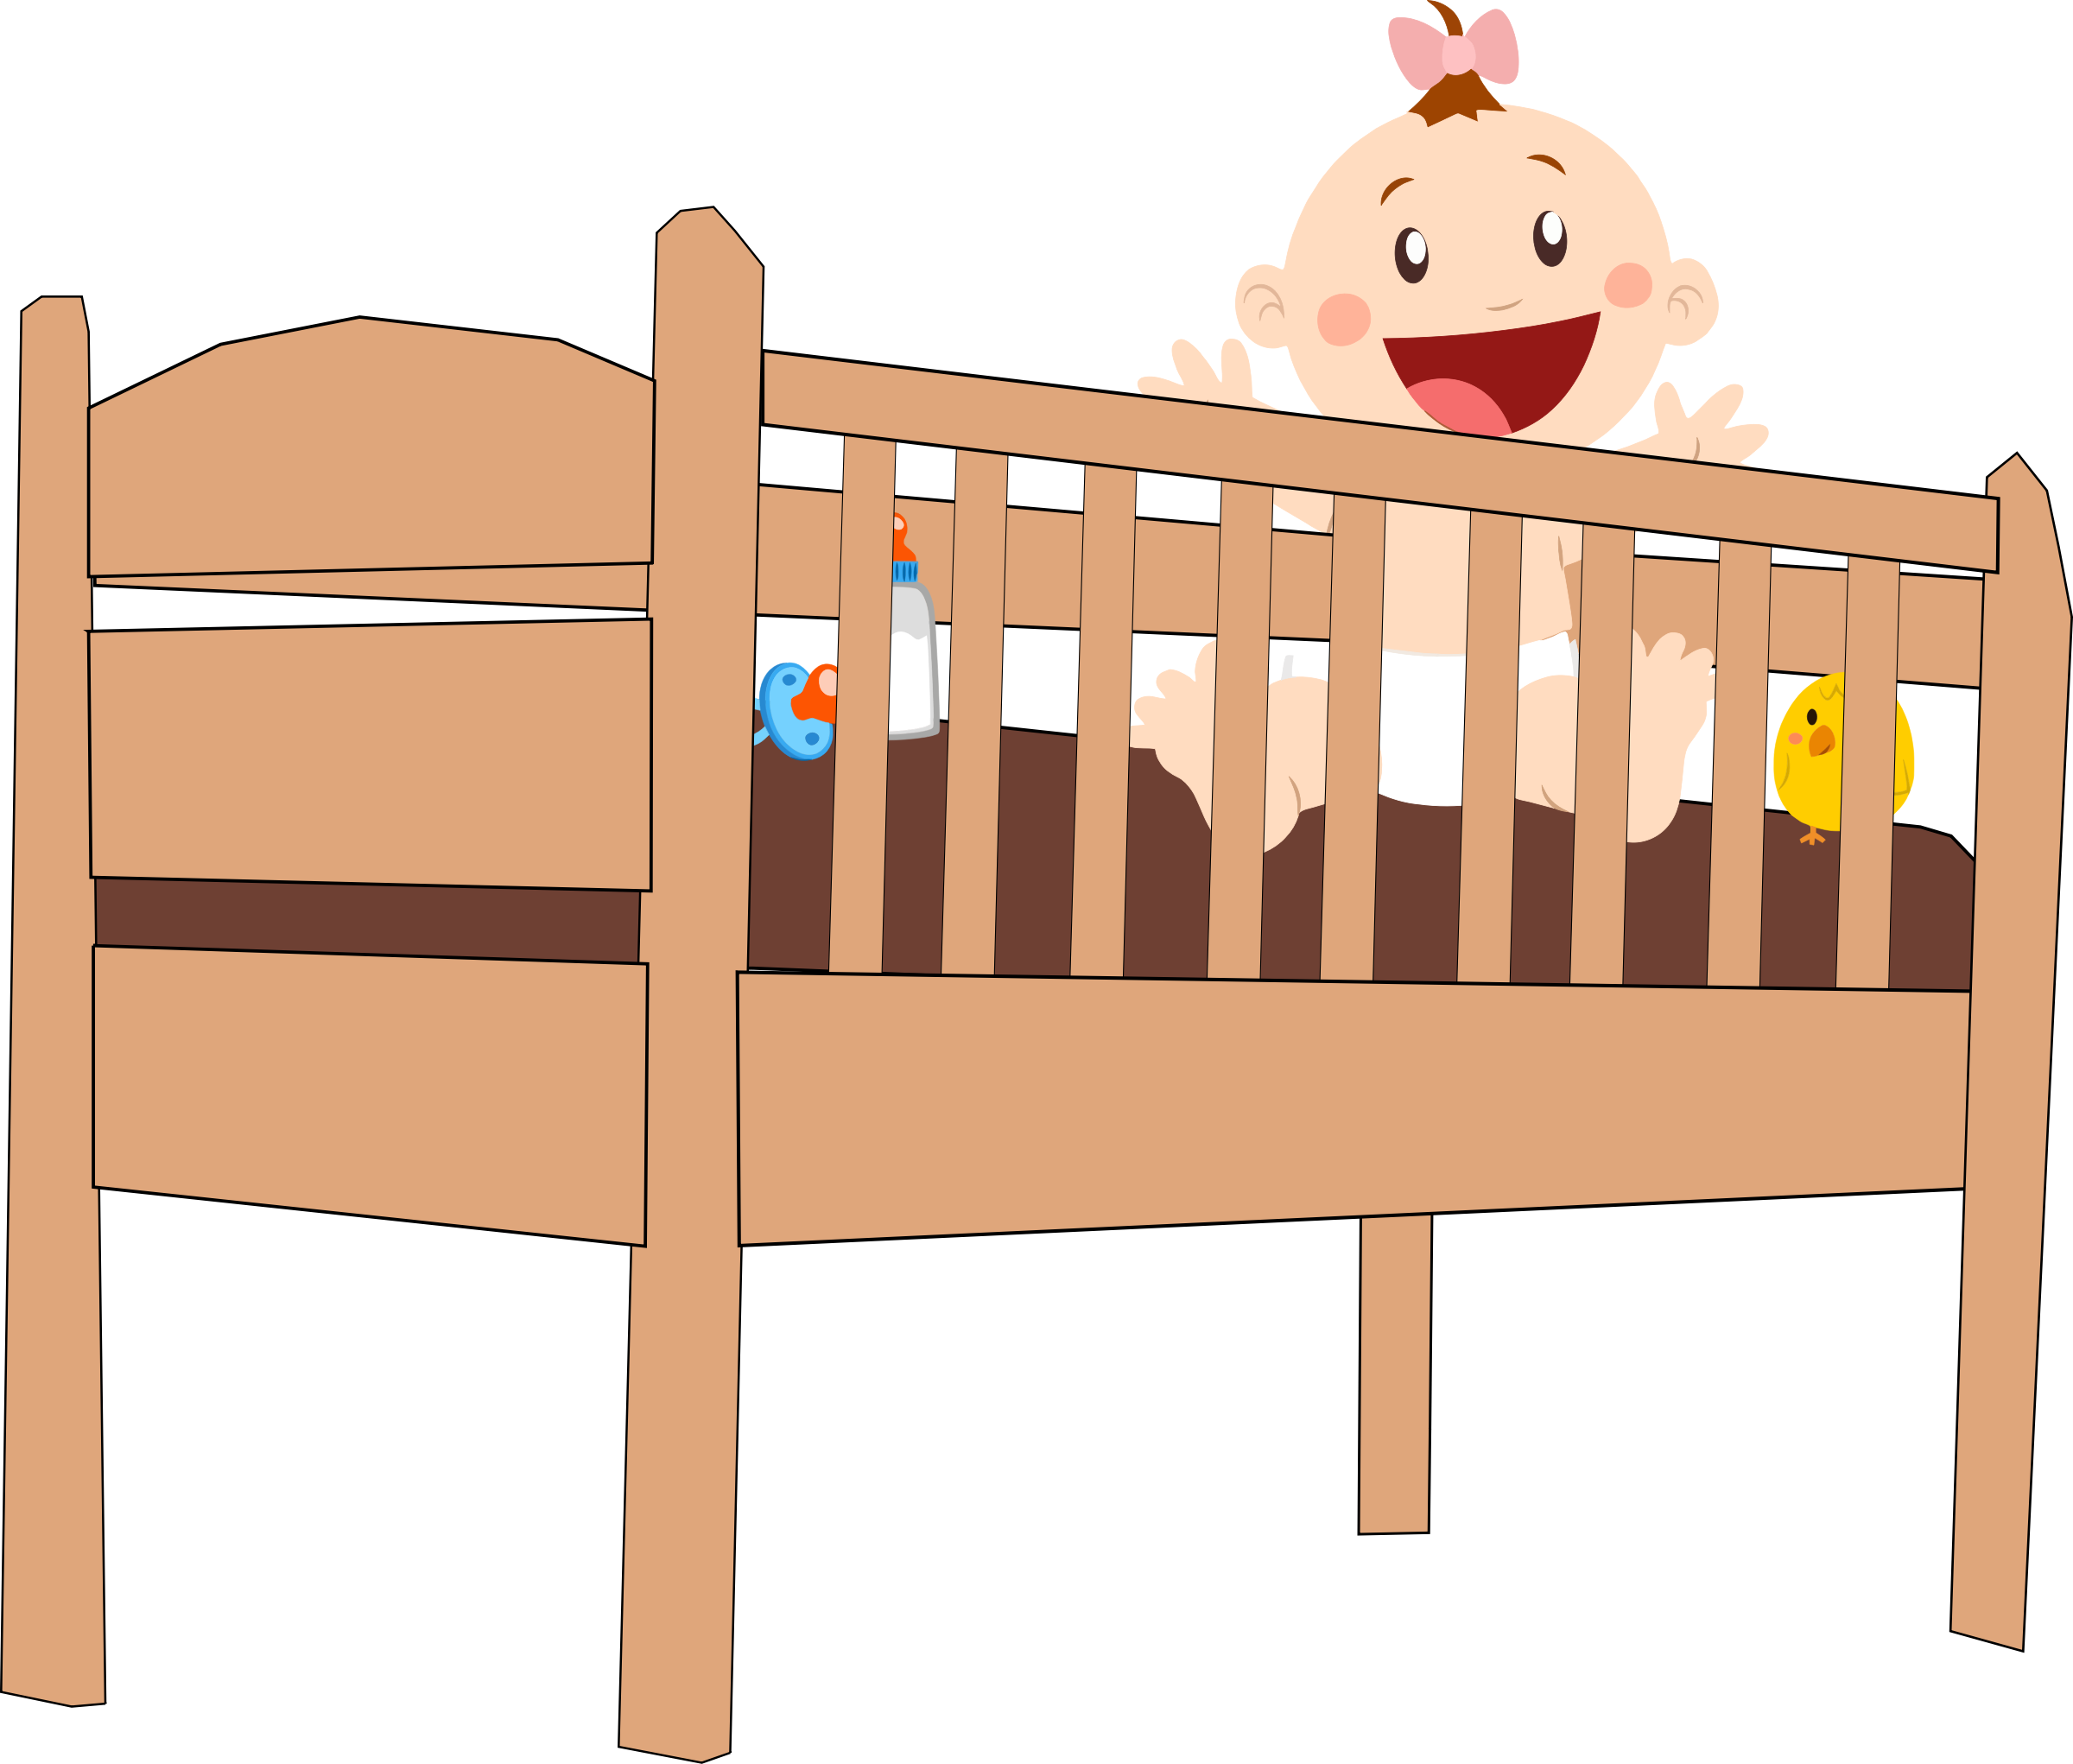 14 cliparts for free. Download Bed clipart cot and use in.